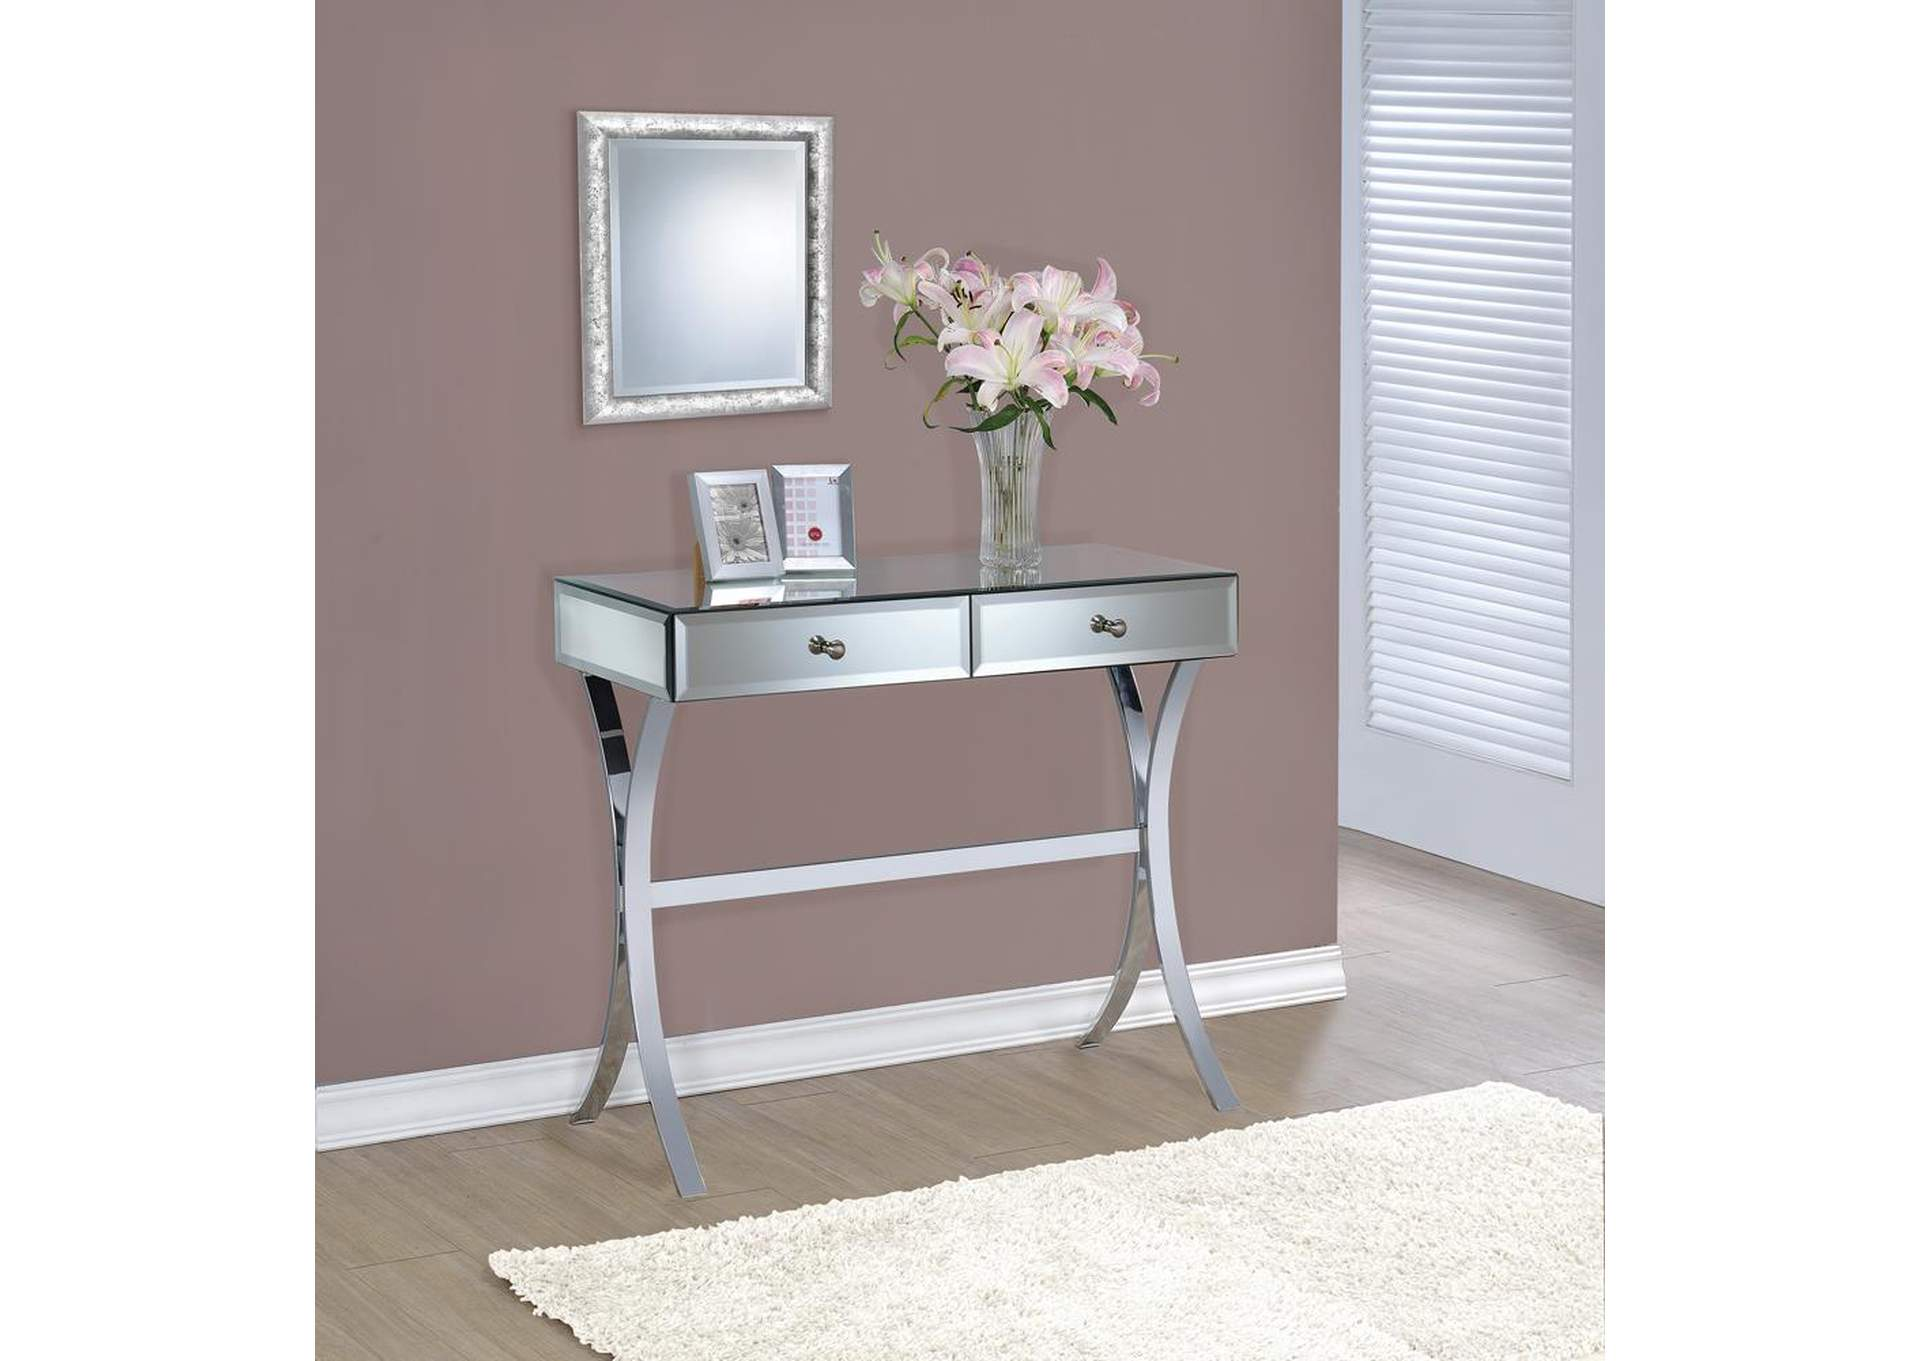 Mirrored Console Table,Coaster Furniture